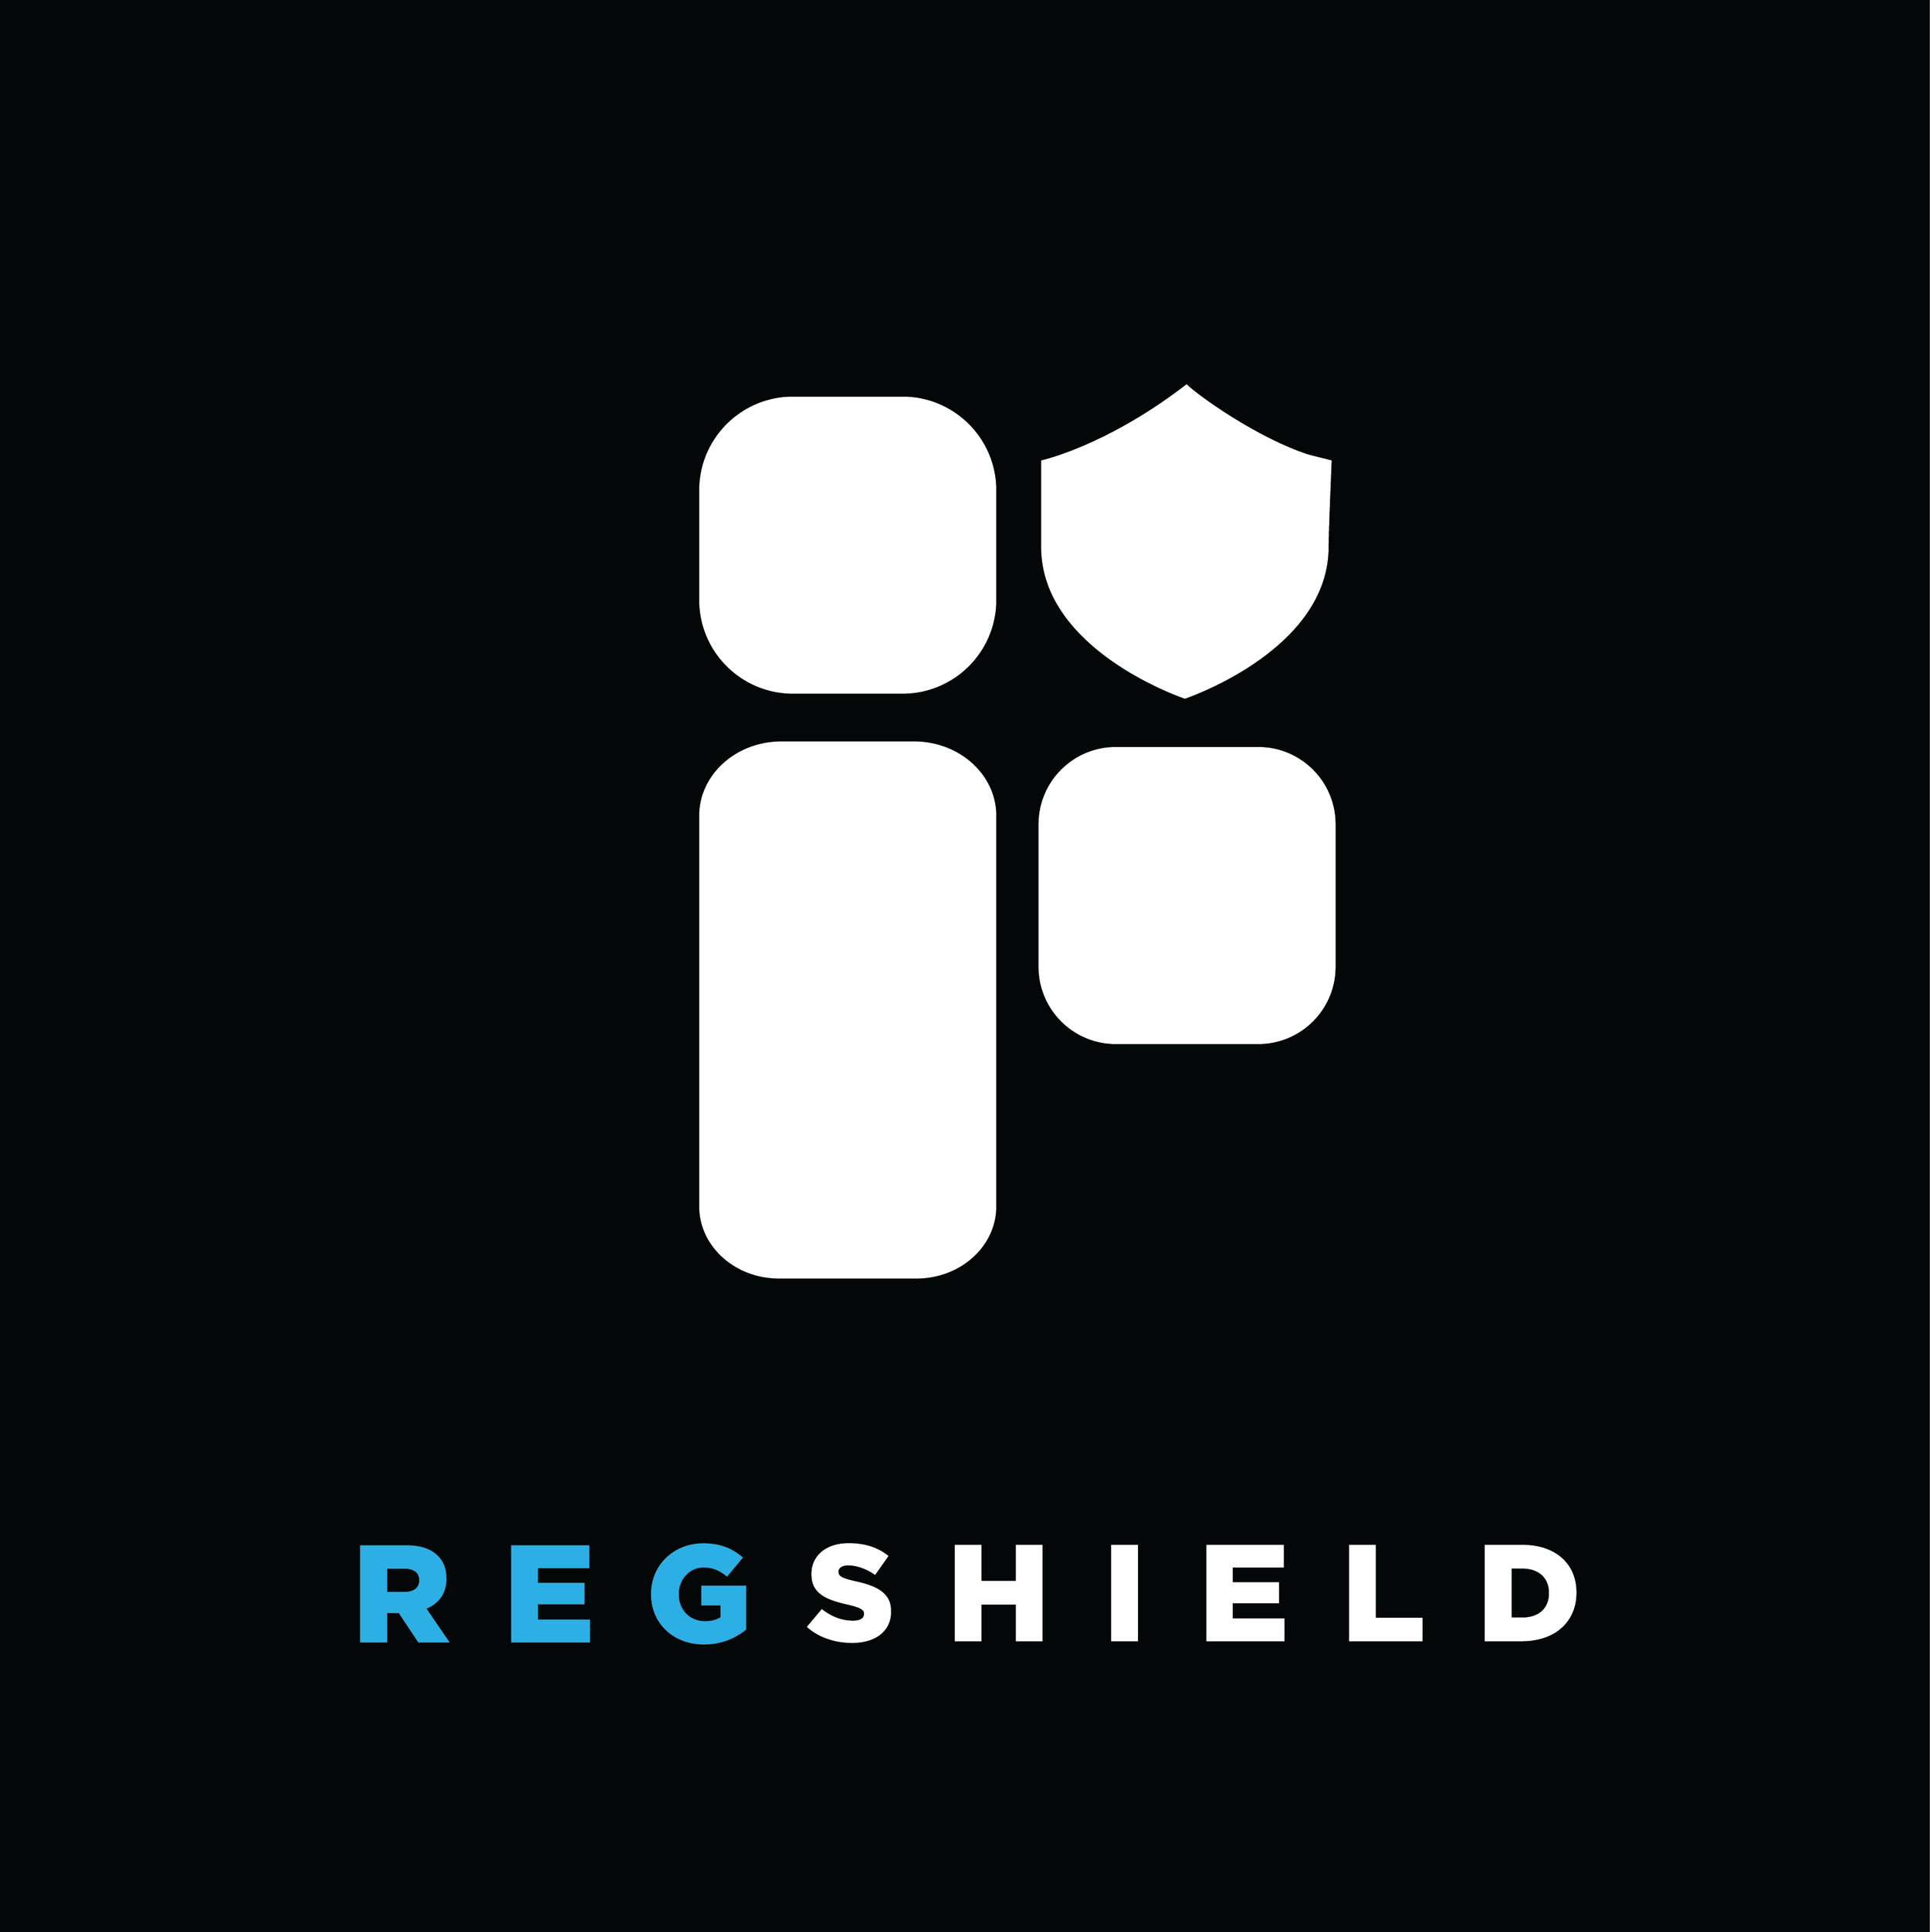 RegShield_Square_Blk (2).png